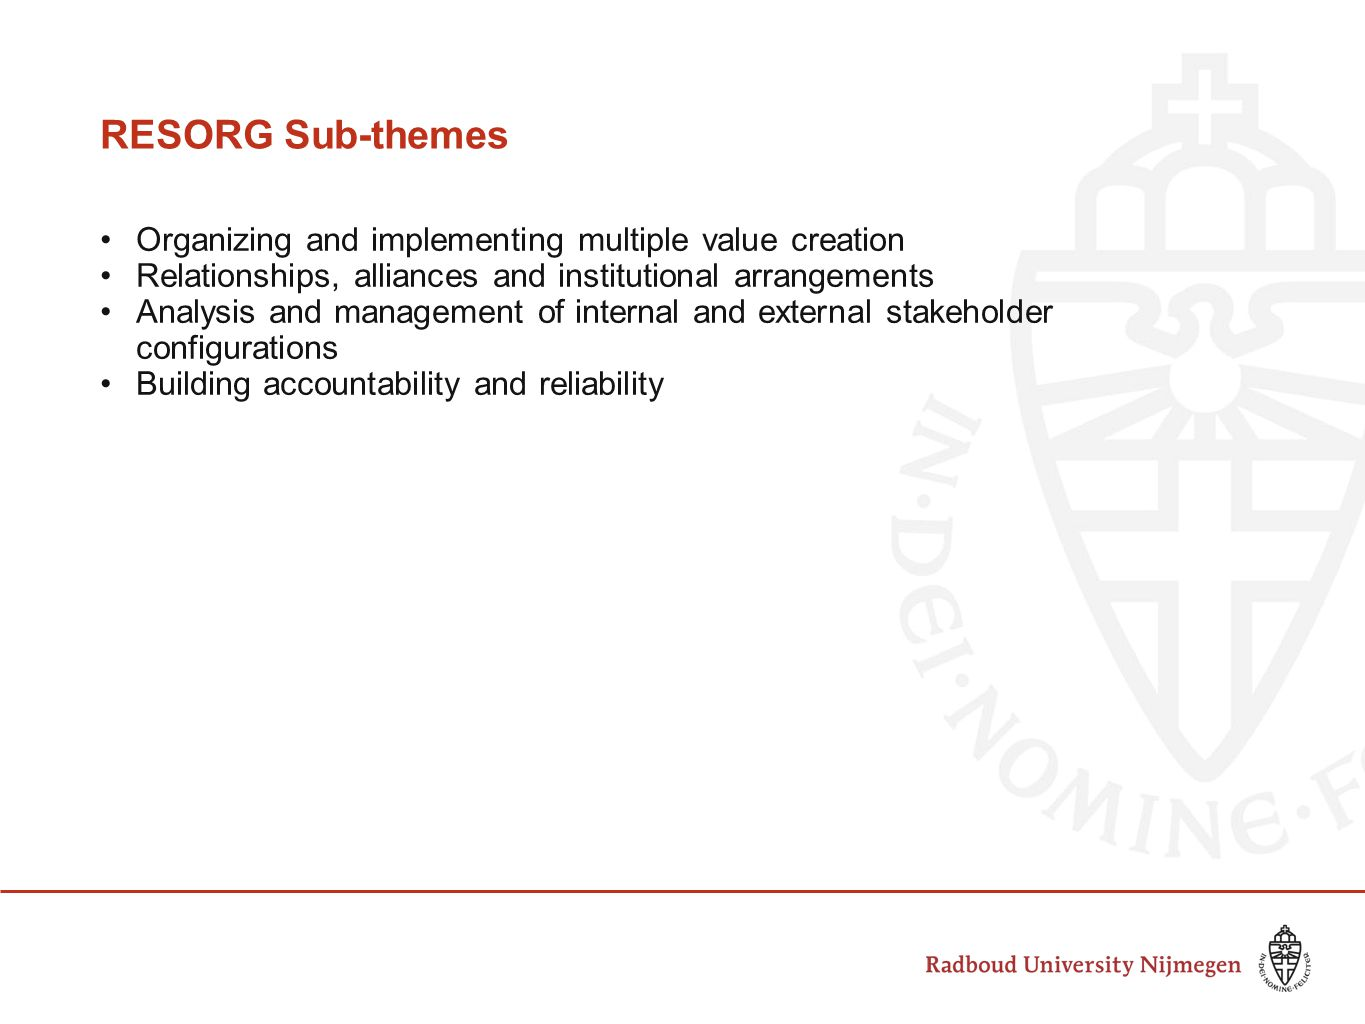 RESORG Sub-themes Organizing and implementing multiple value creation Relationships, alliances and institutional arrangements Analysis and management